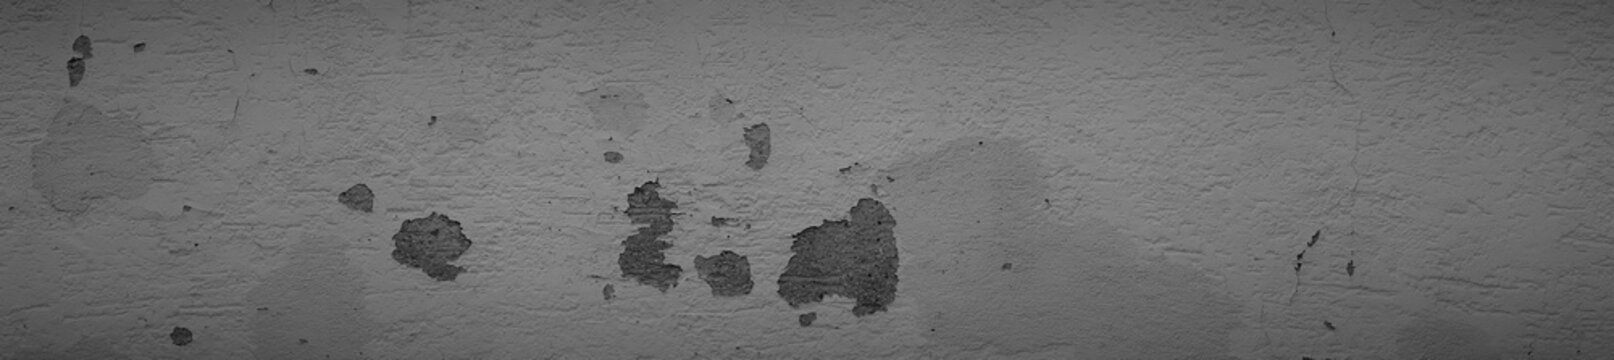 Dark rough cracked house wall texture. Cracked concrete wall in dark gray in widescreen format.